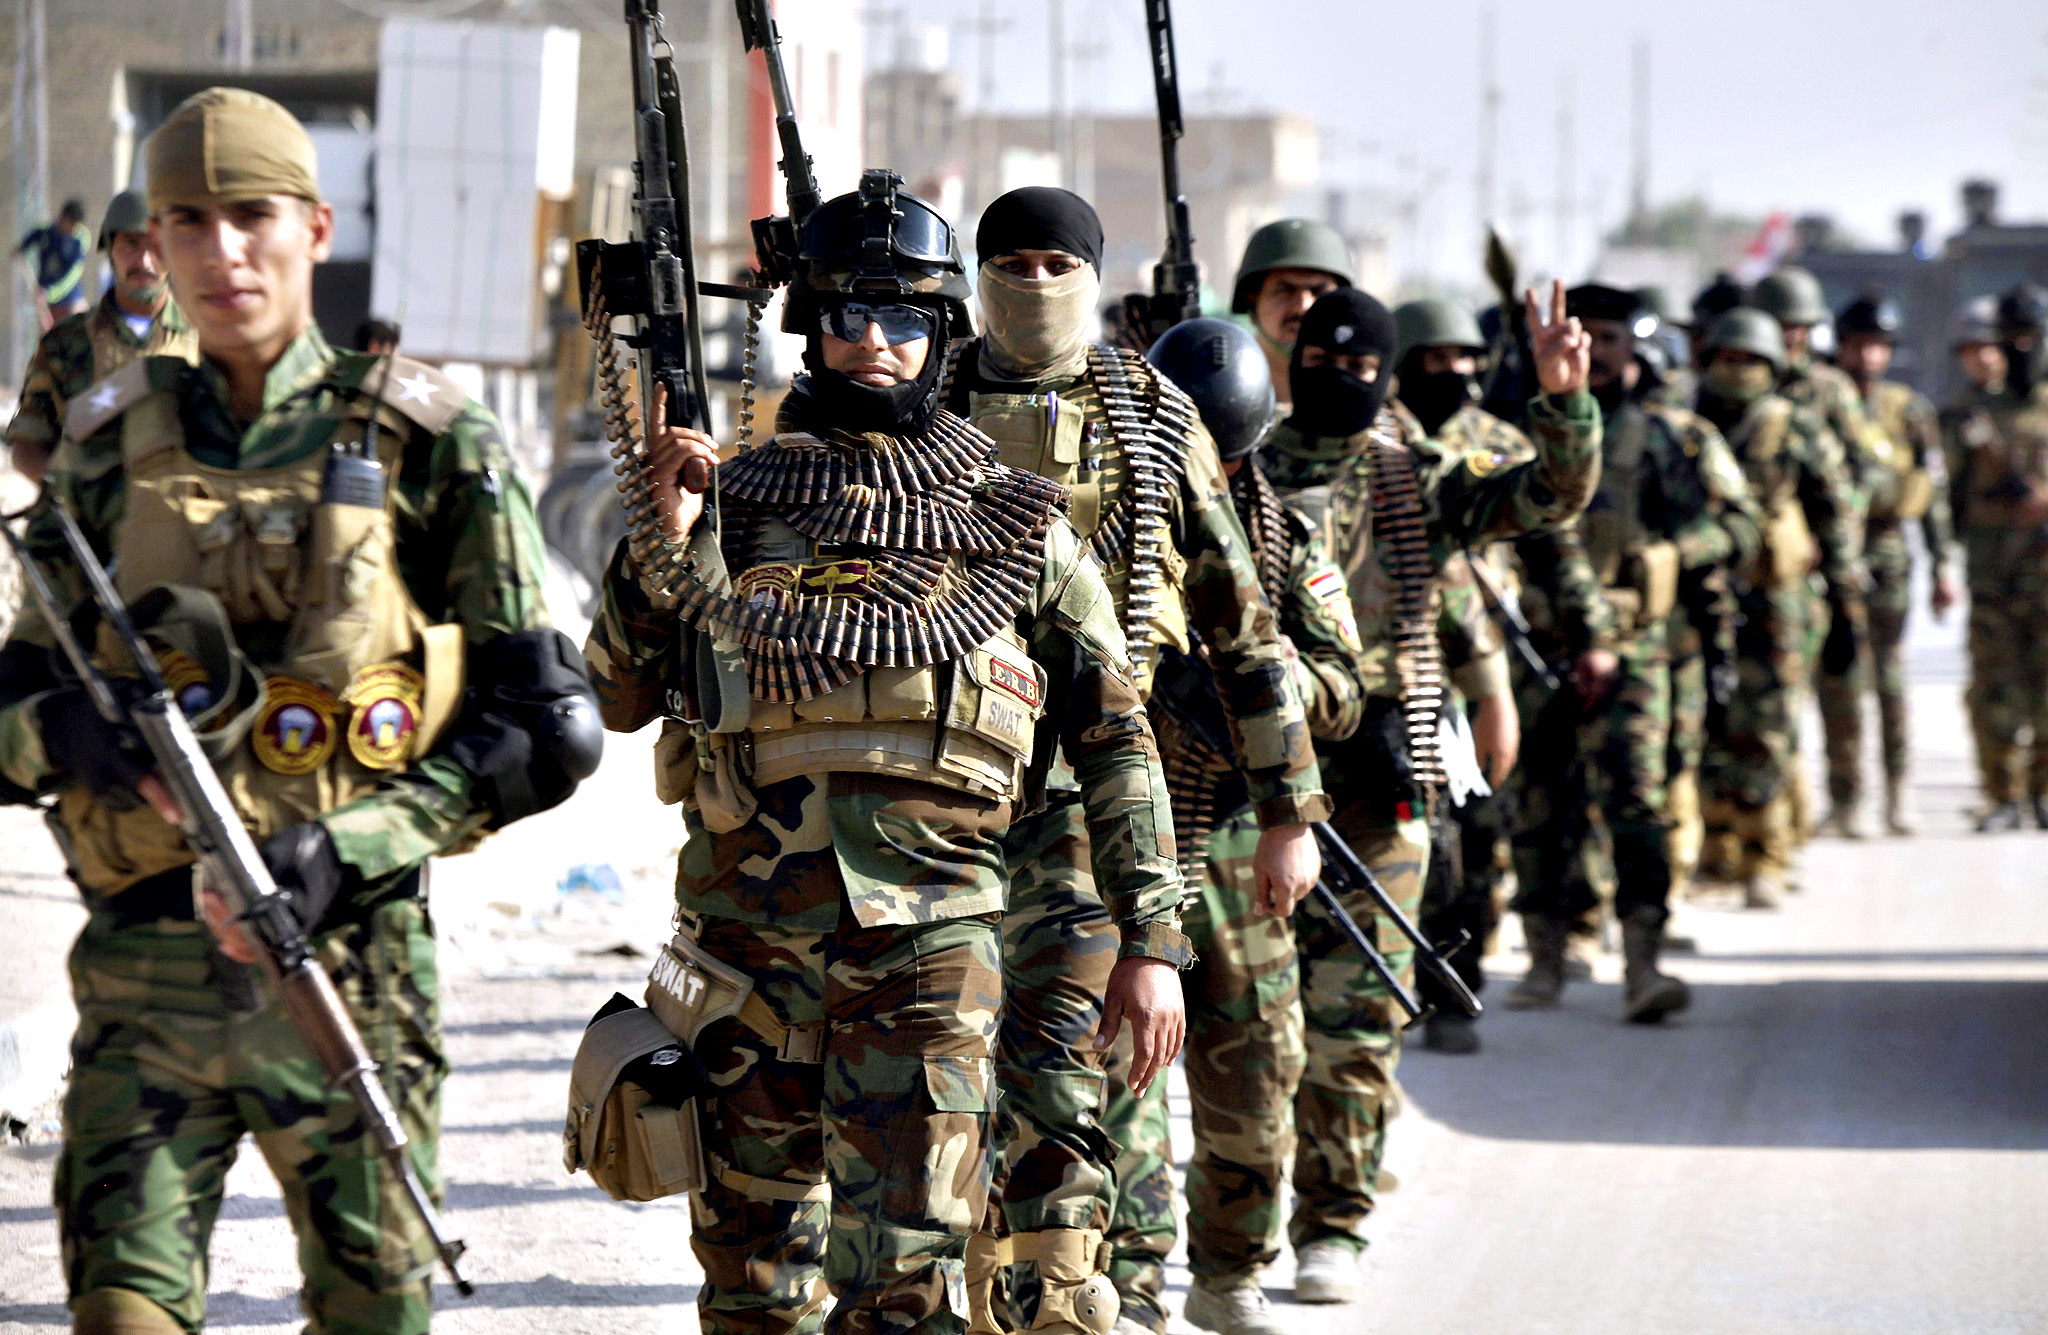 Iraqi security forces march on the outskirts of Najaf, south of Baghdad November 19, 2014.